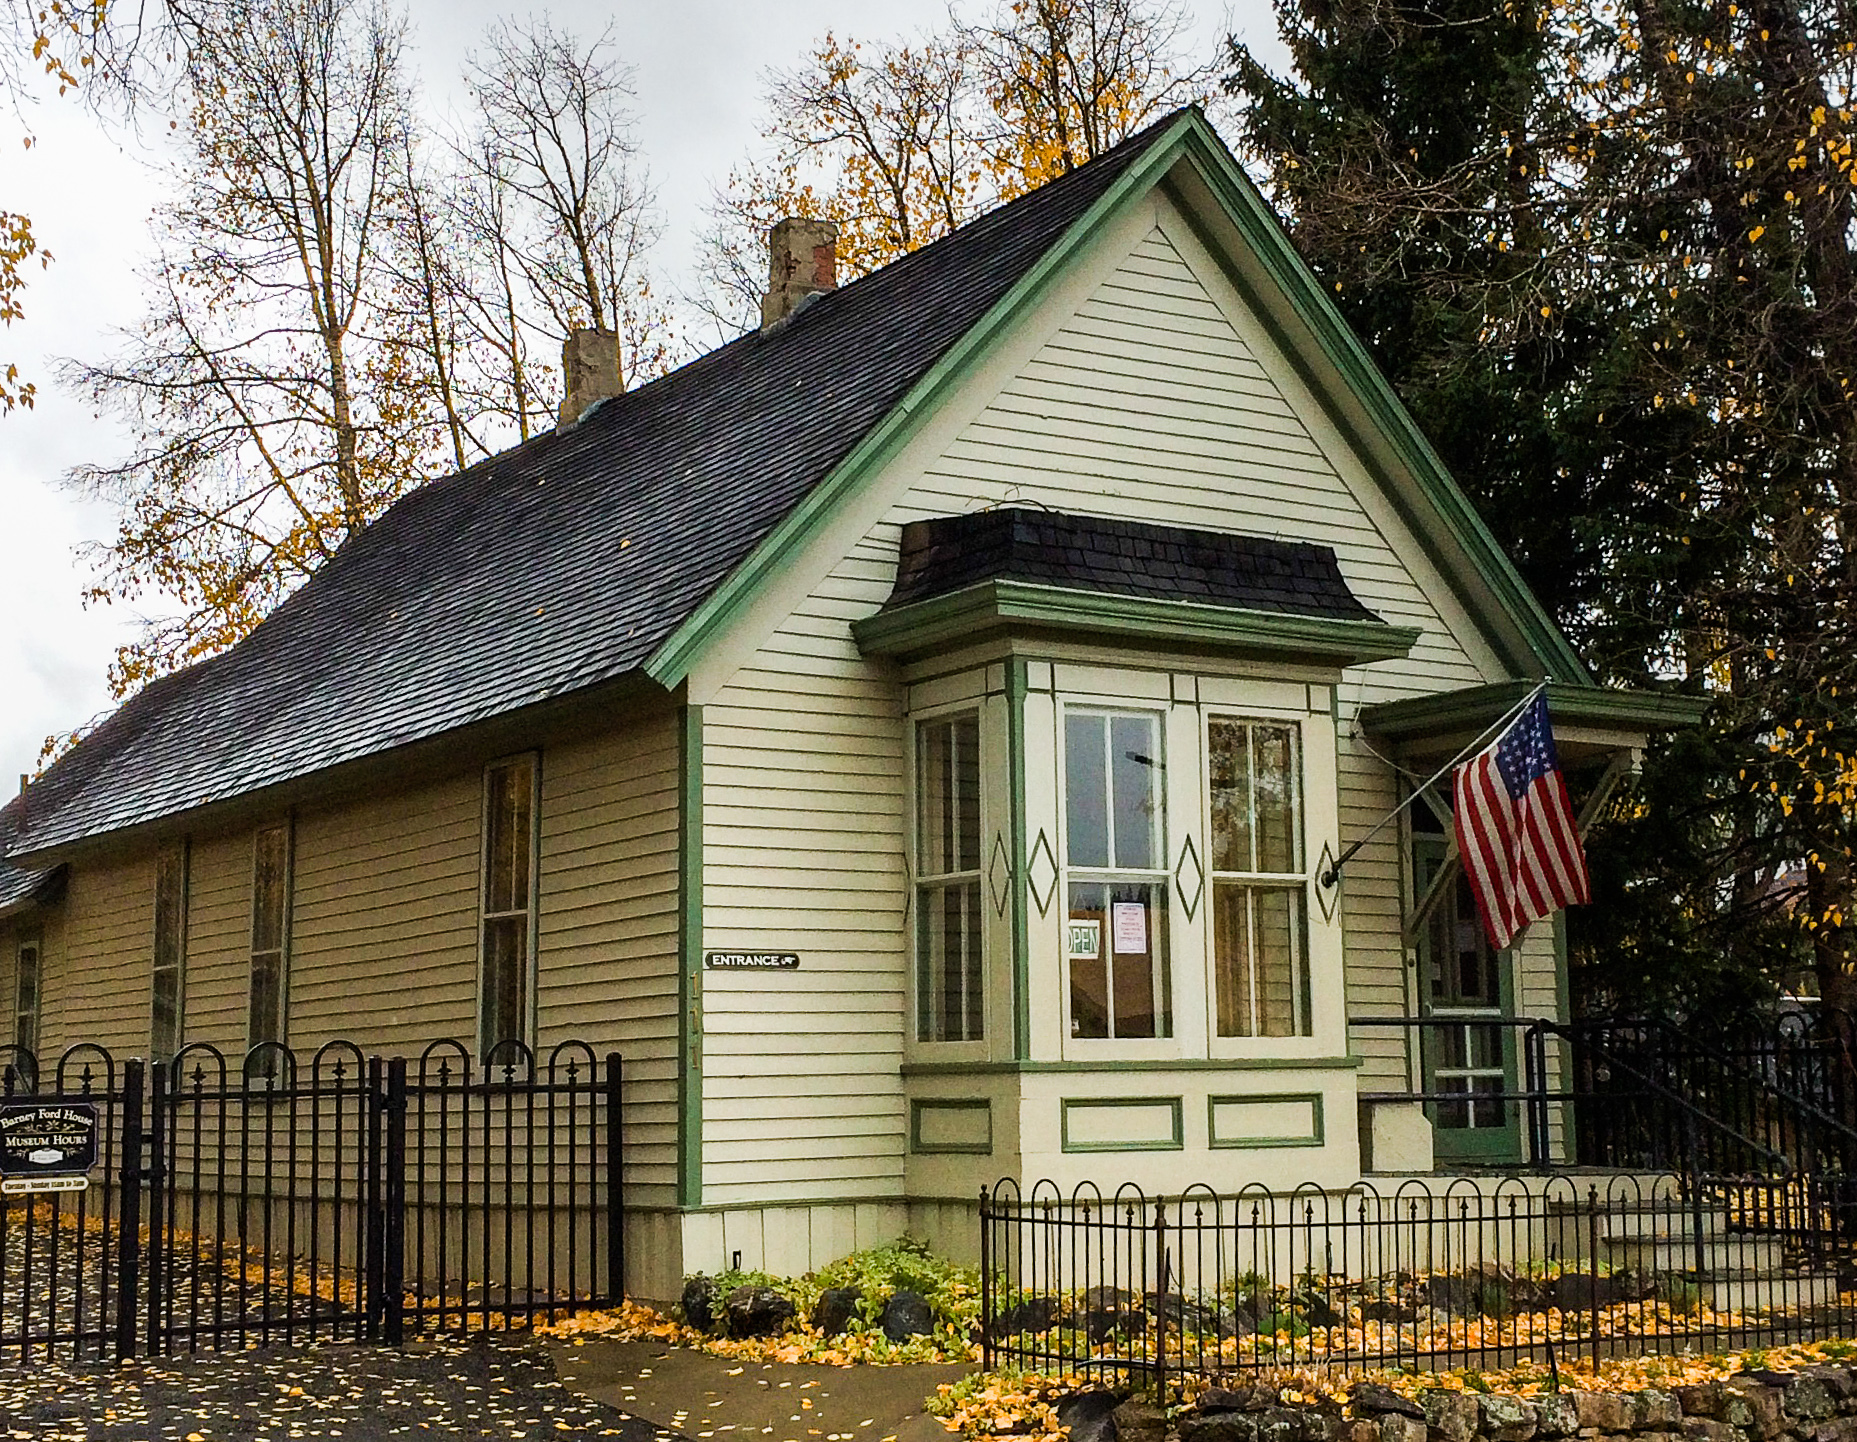 Barney Ford House Museum, light yellow with green trim and an American flag hanging by the front door.